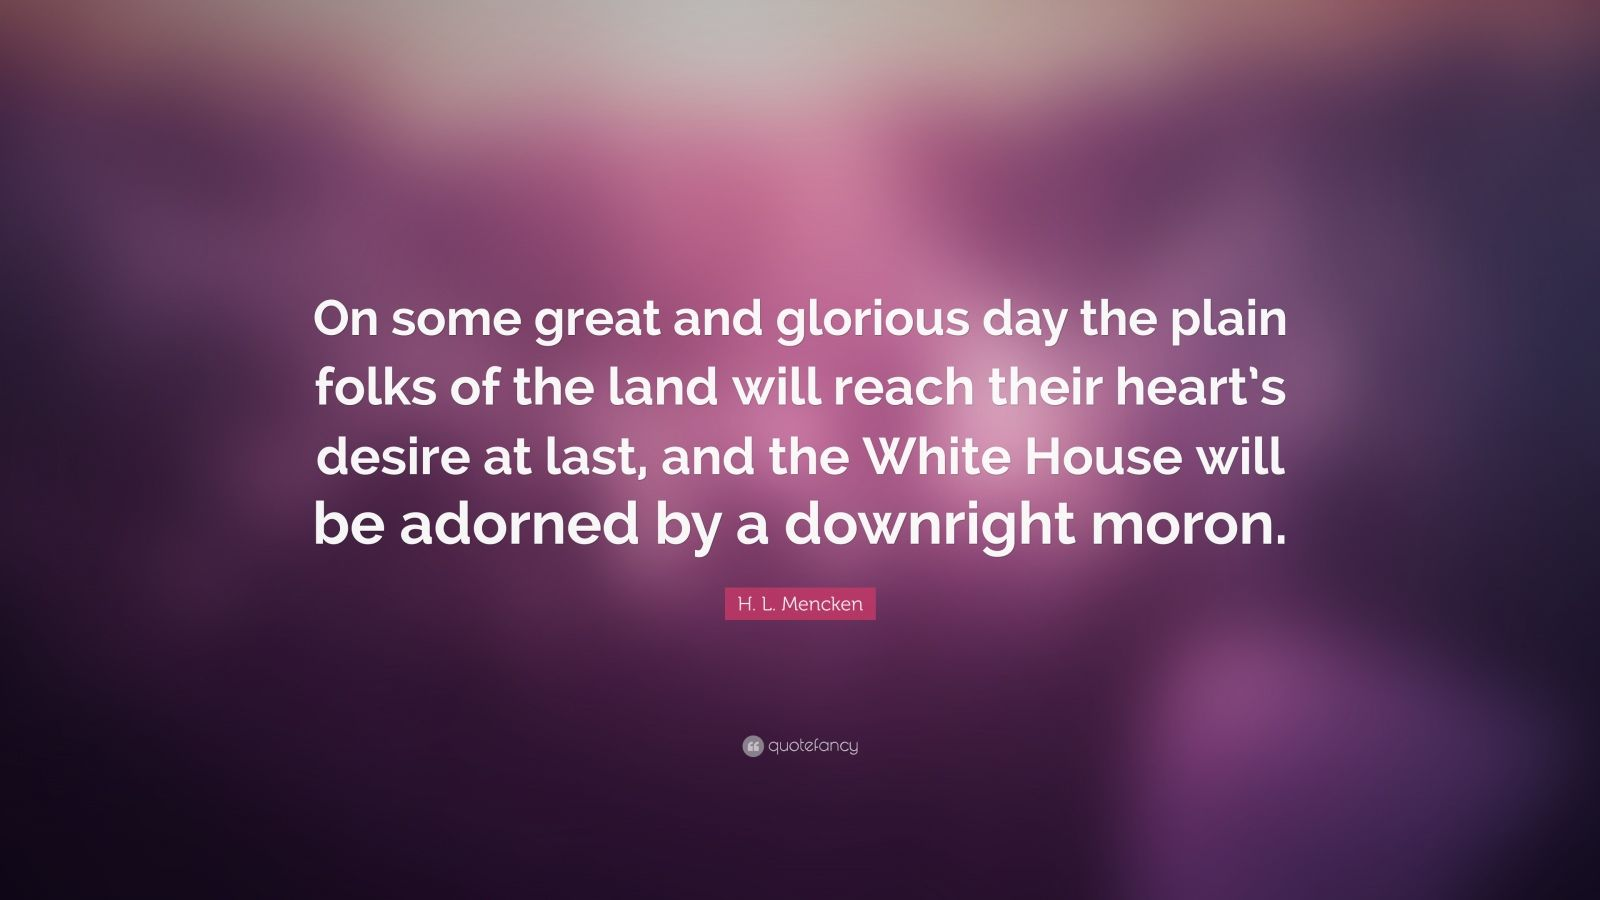 "H. L. Mencken Quote: ""On some great and glorious day the plain folks of the land will reach their heart's desire at last, and the White House will be adorned by a downright moron."""